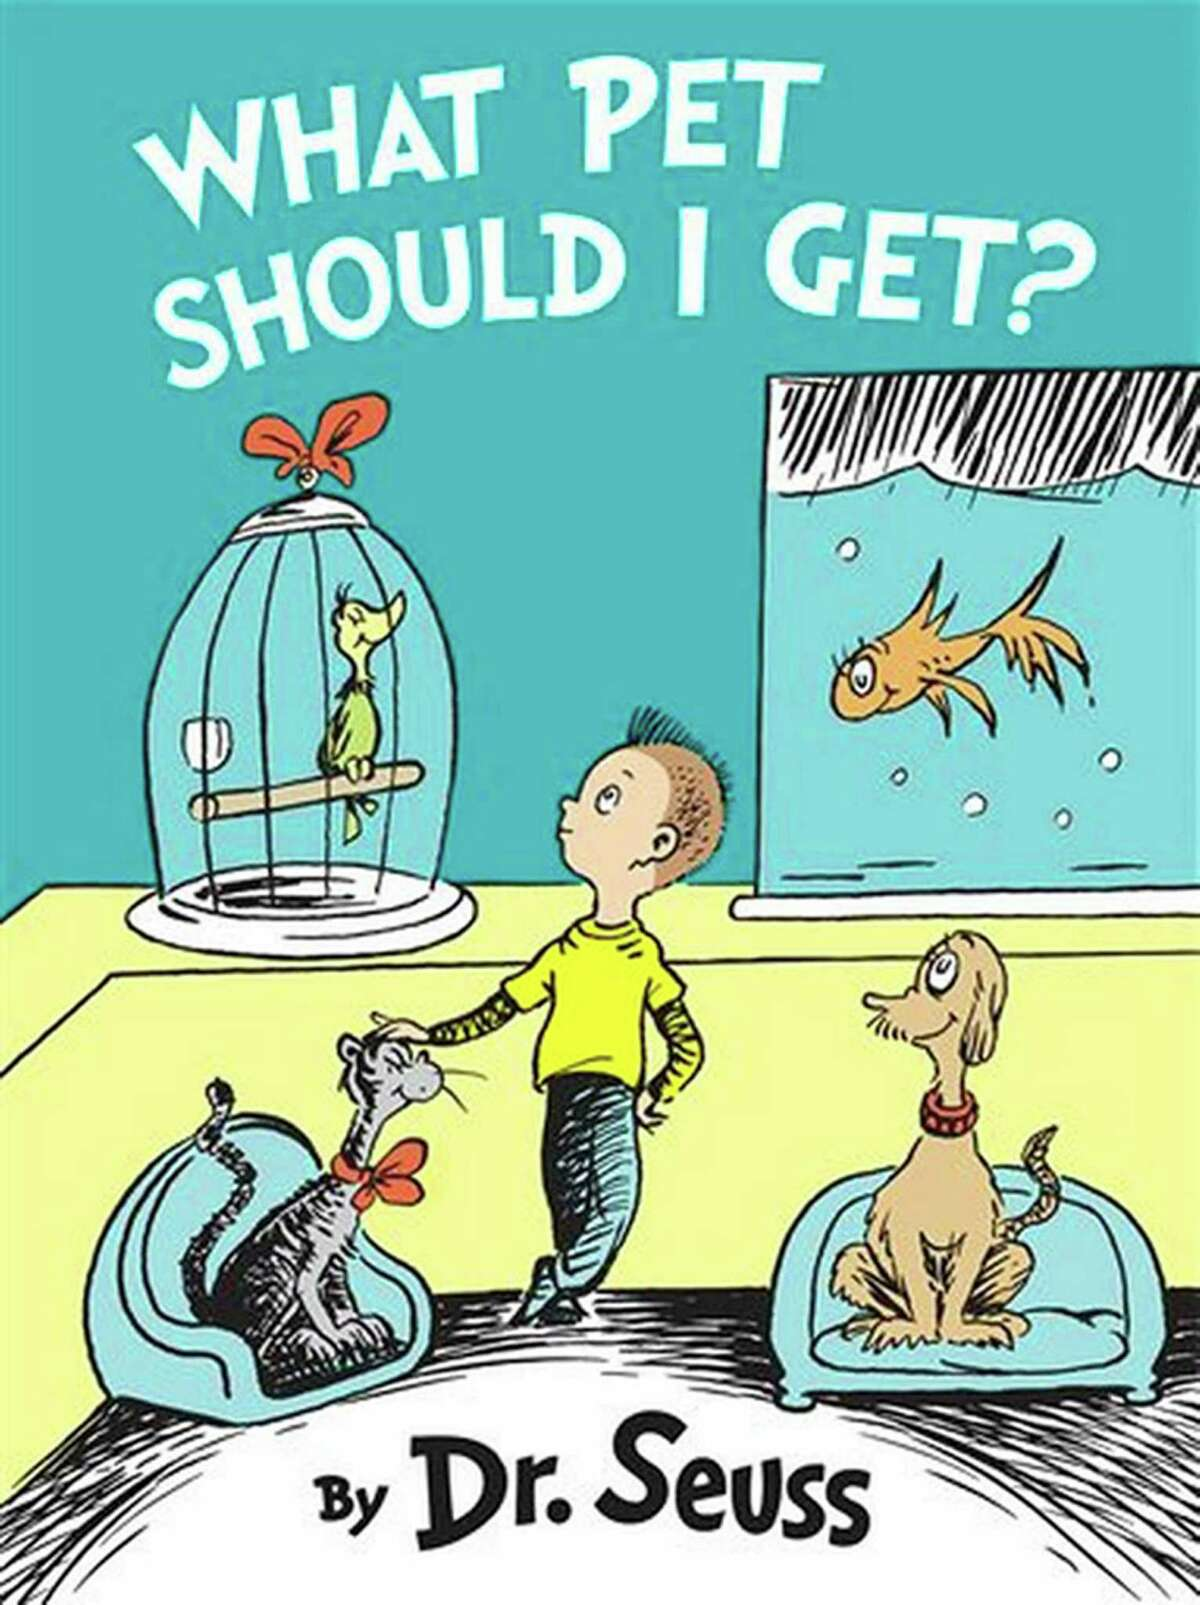 """""""What Pet Should I Get?"""" by Dr. Seuss, is coming out July 28. This never-before-seen book will be celebrated on its release day at the Barnes and Noble bookstore in Danbury. The event, which begins at 7 p.m., is part of the store's Dr. Seuss Spectacular, which continues on July 31. (Handout/TNS)"""